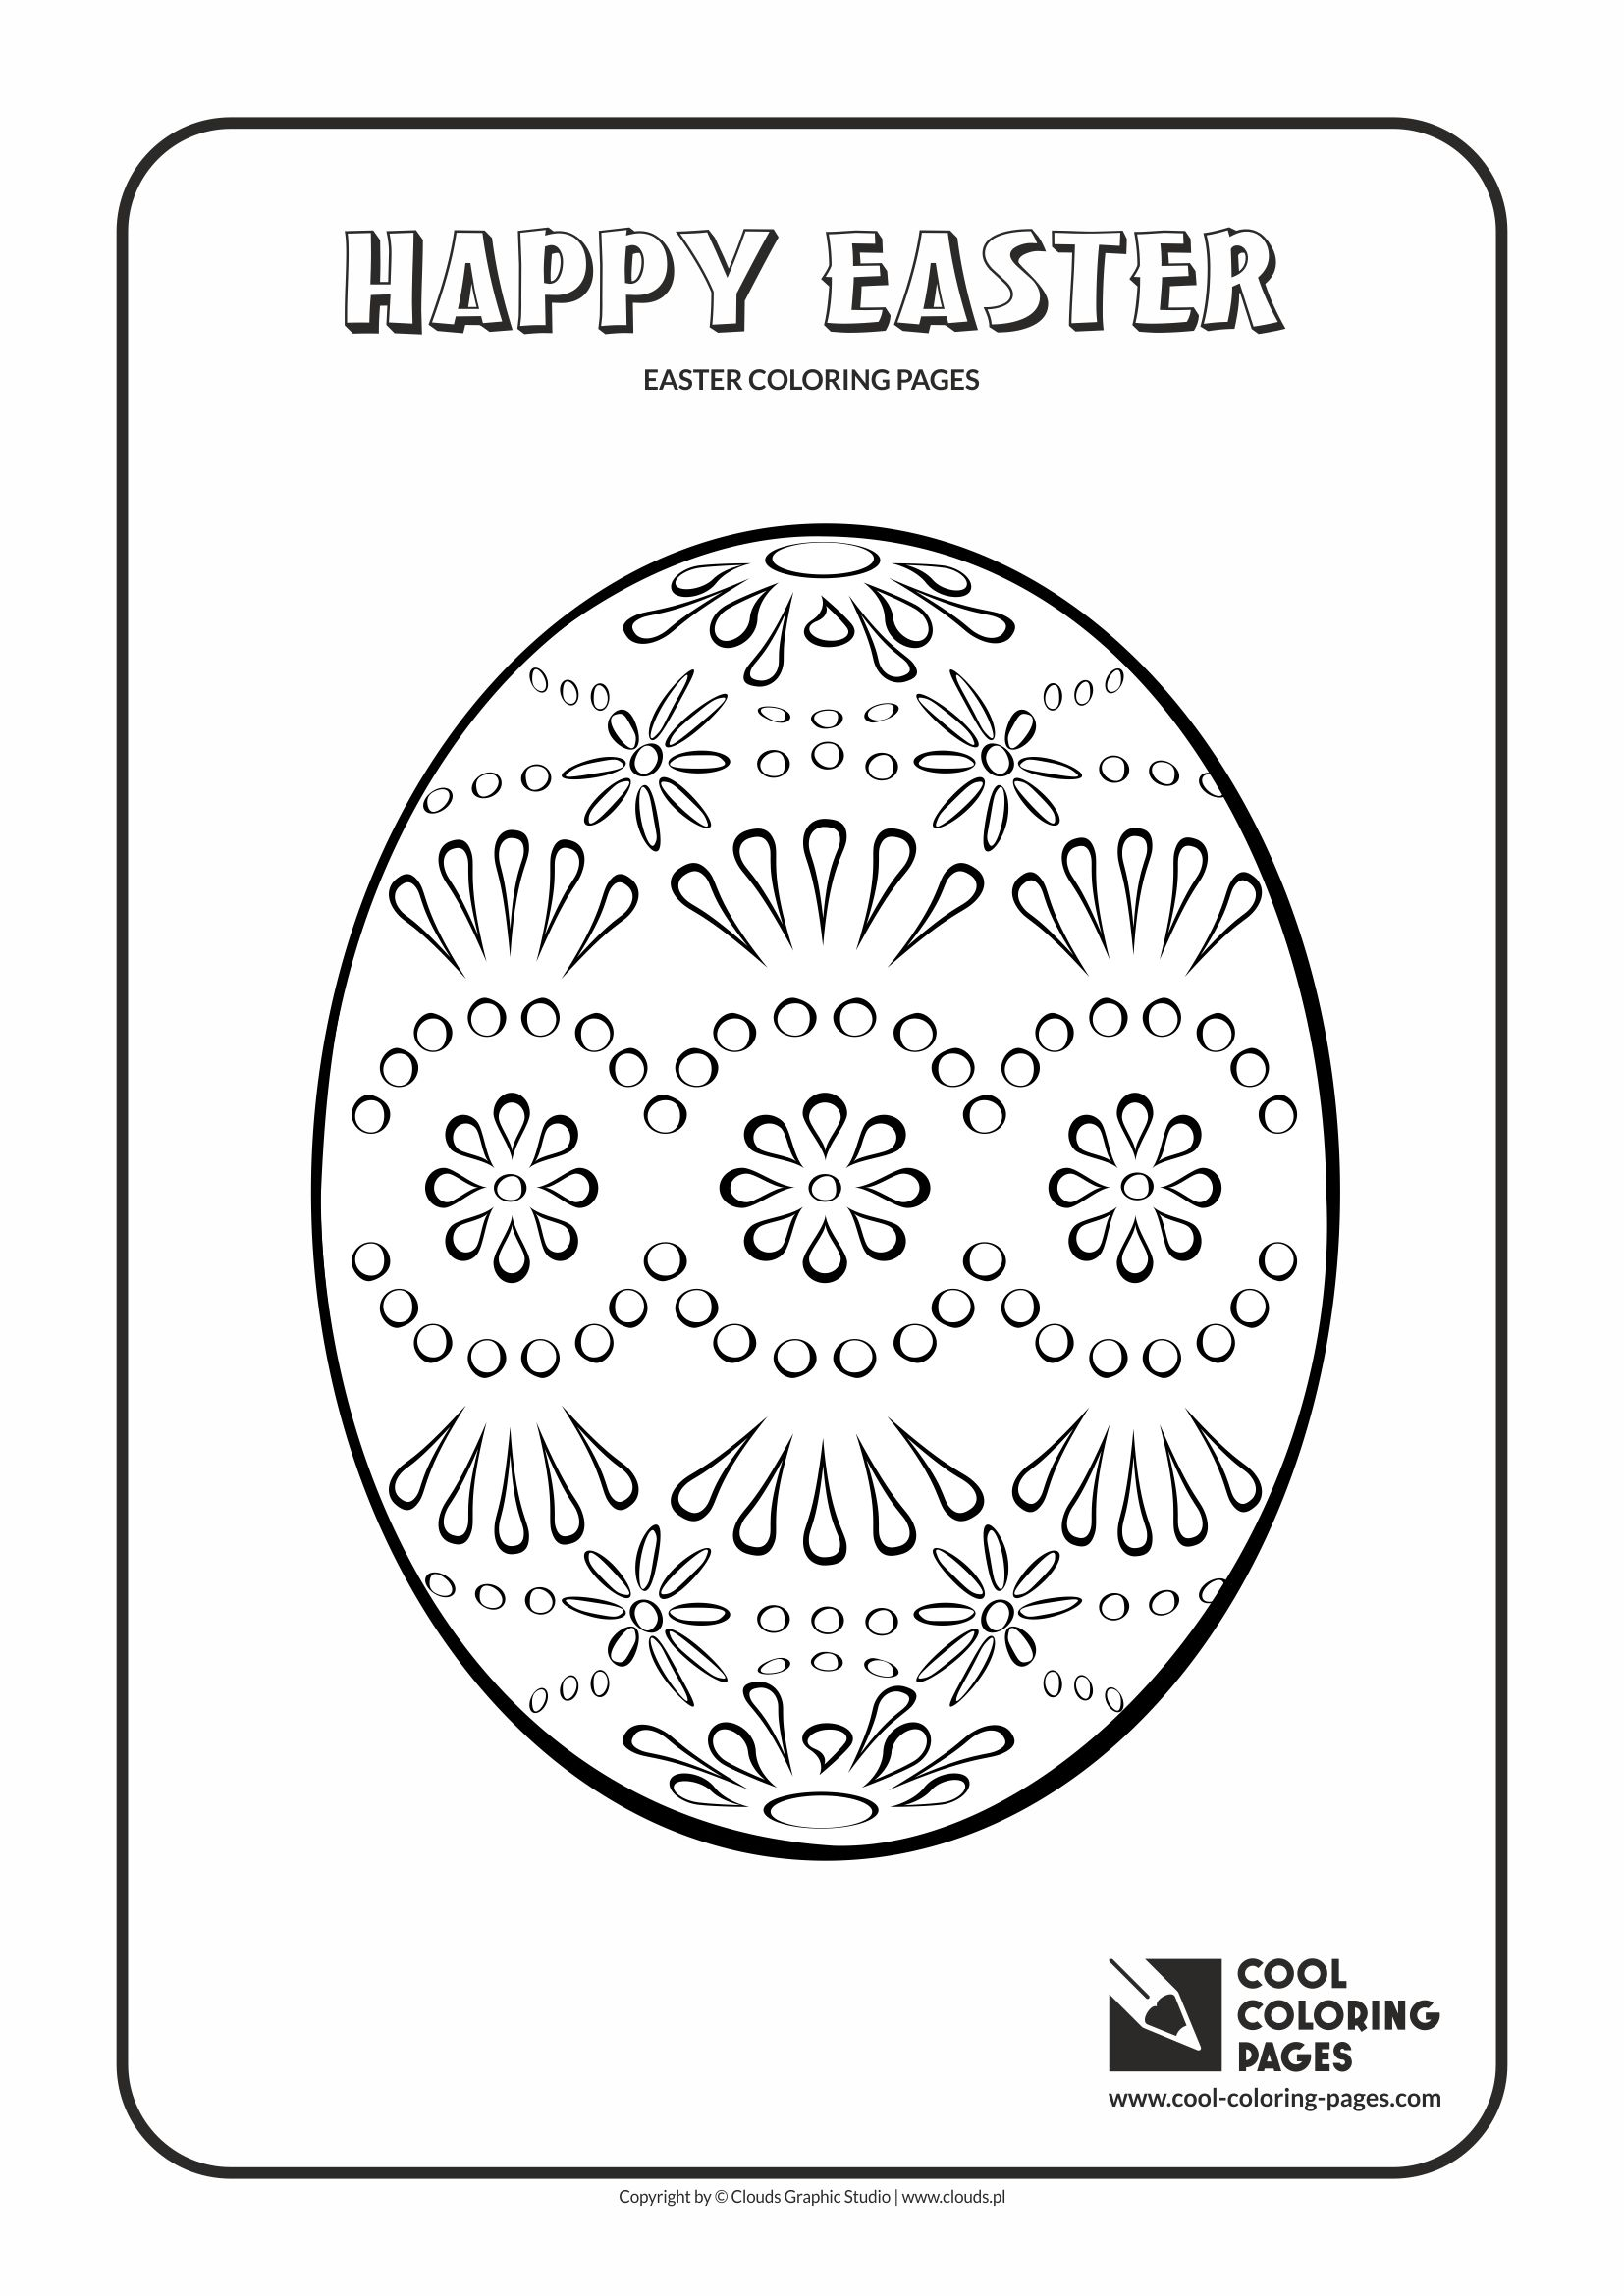 Cool Coloring Pages - Holidays / Easter egg no 5 / Coloring page with Easter egg no 5